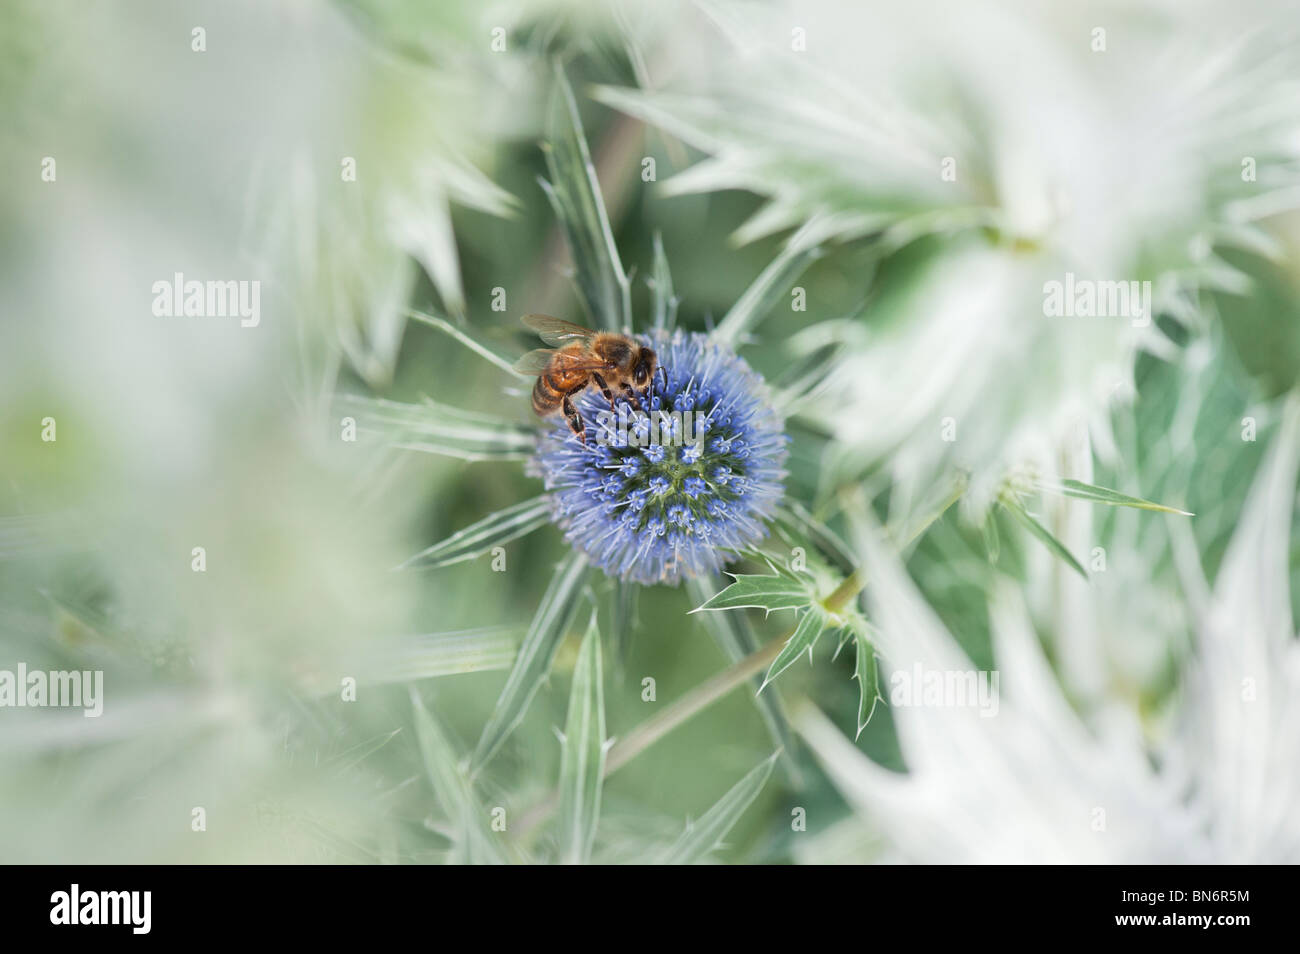 Honey Bee on Eryngium x zabelii Jos Eijking Sea holly in an English country garden - Stock Image